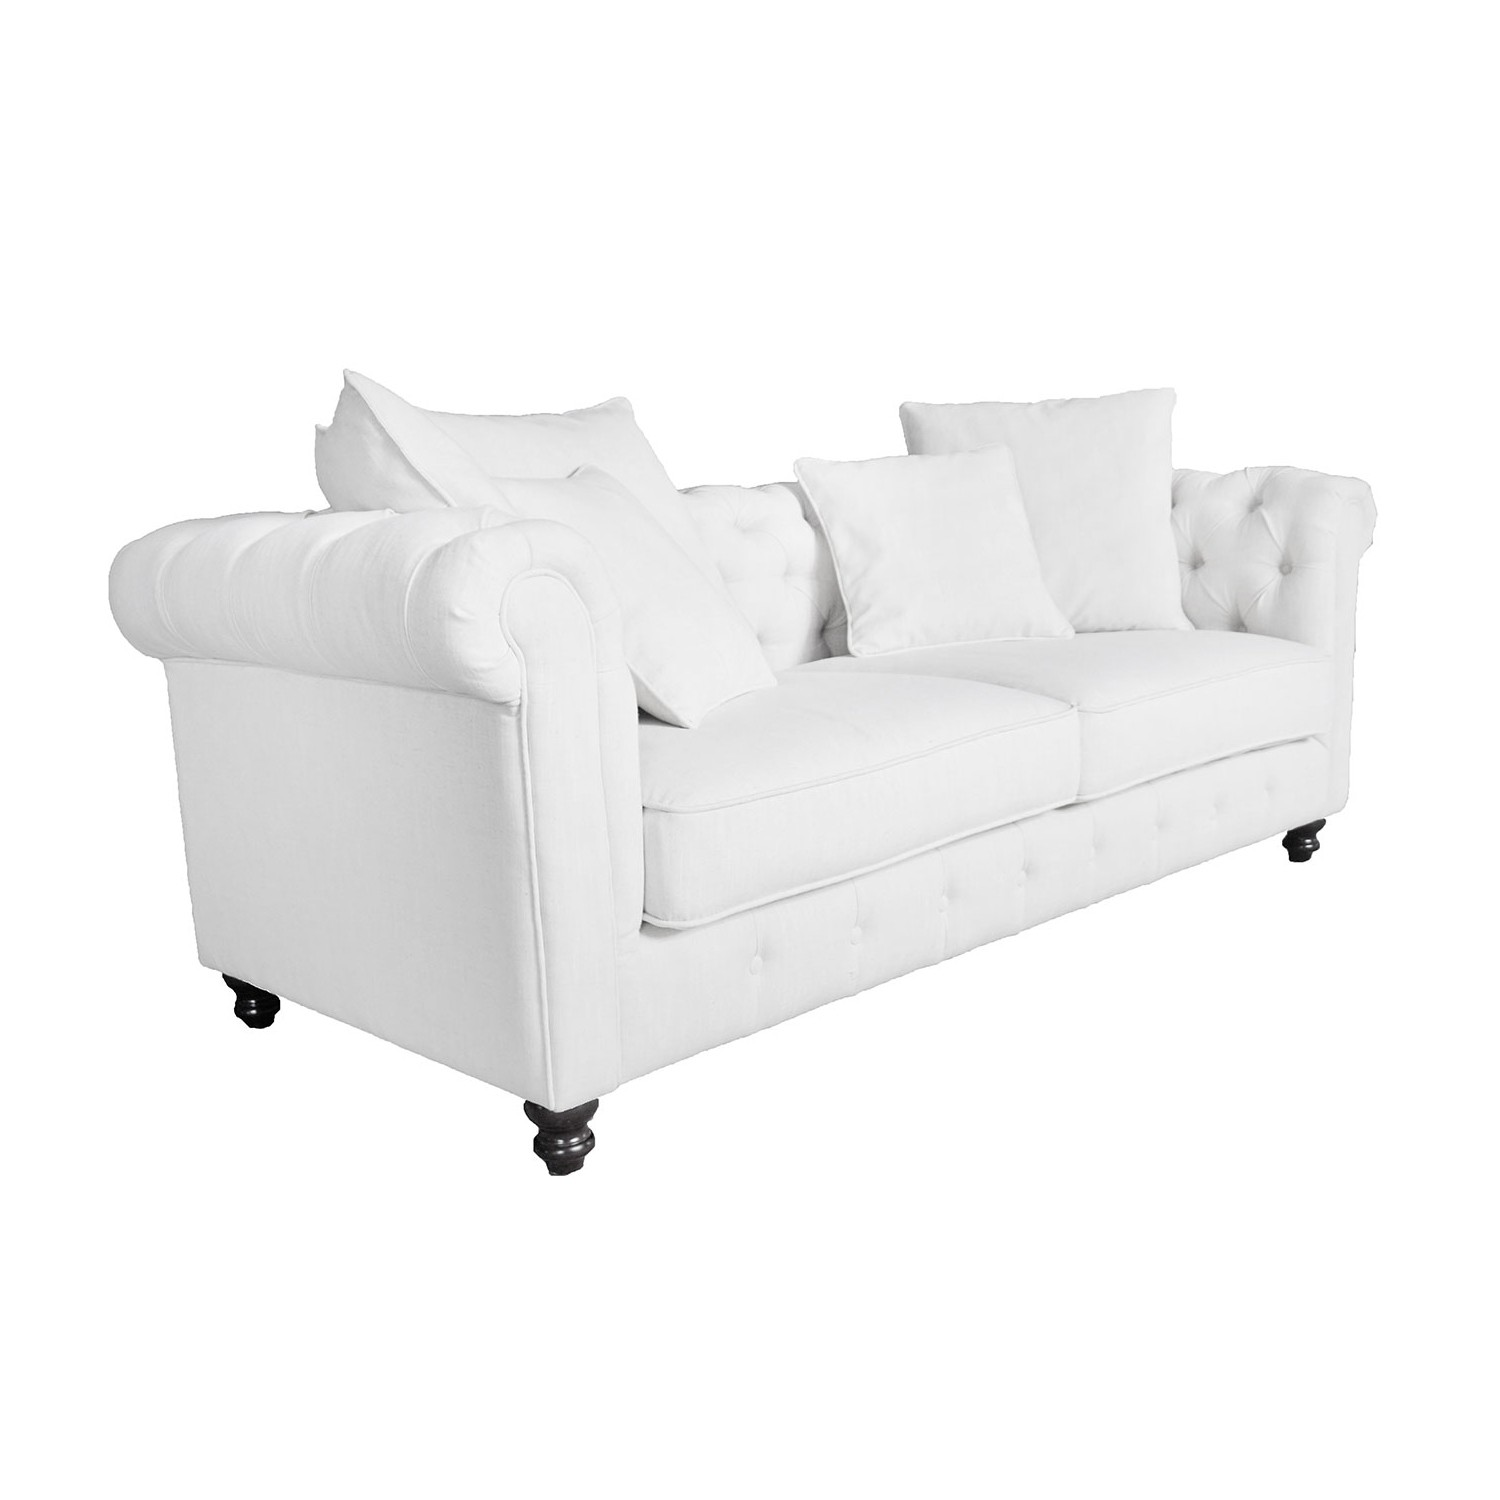 Haston 3 seater tuffted back sofa upholstered polyester linen viscose833836beige benita 01a online only